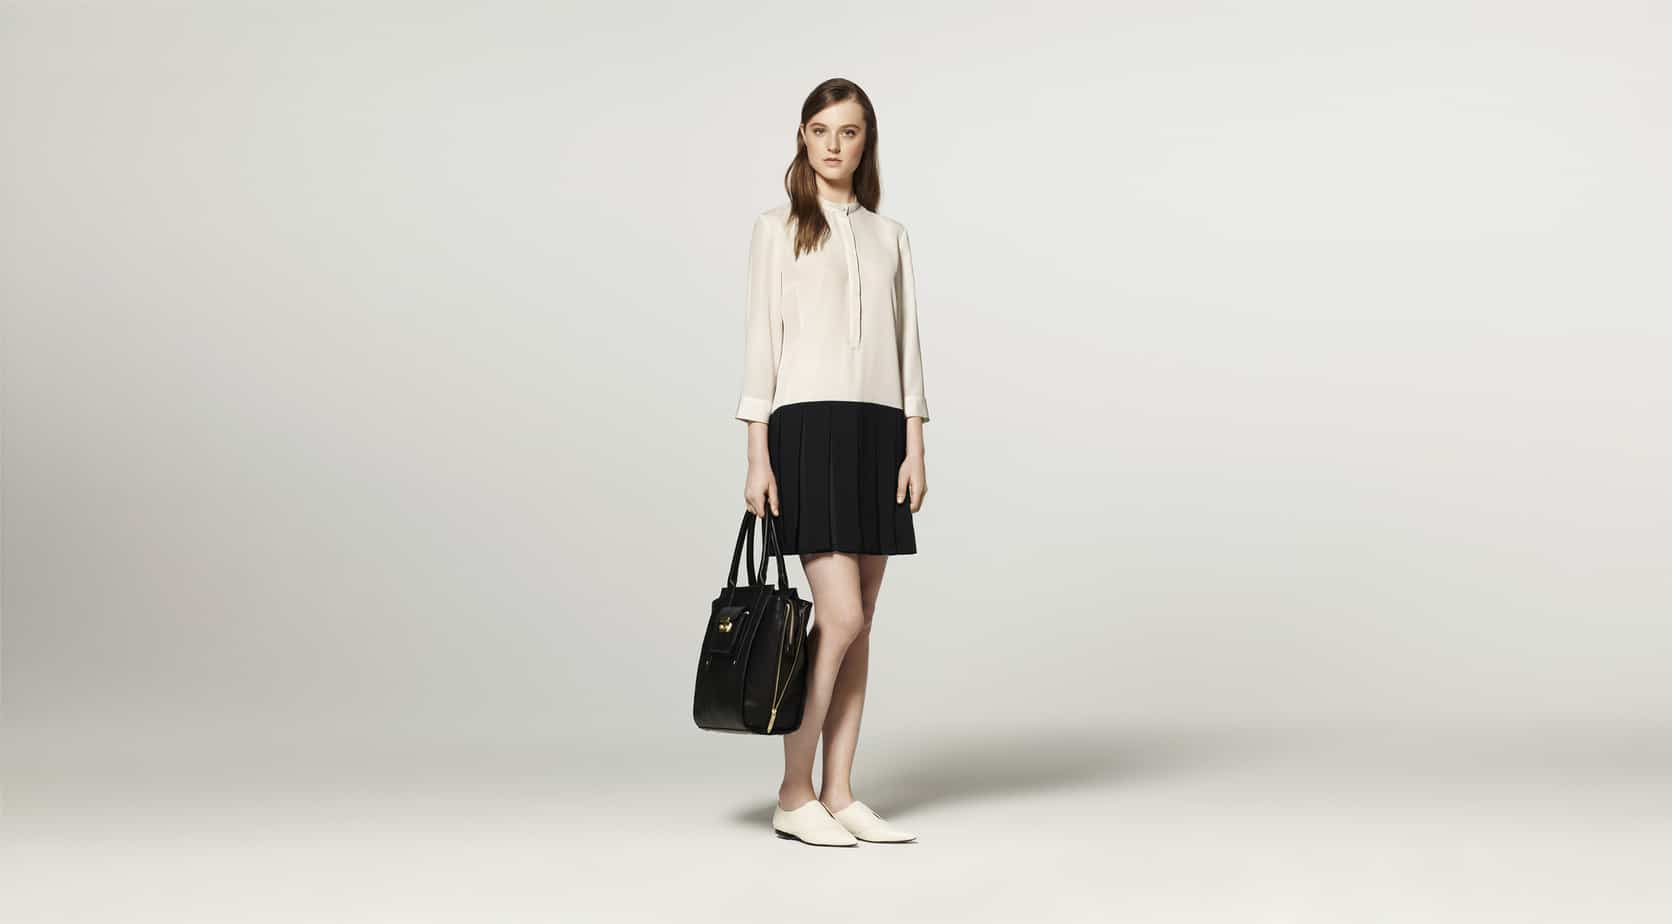 Phillip Lim for Target – WHAT?!?